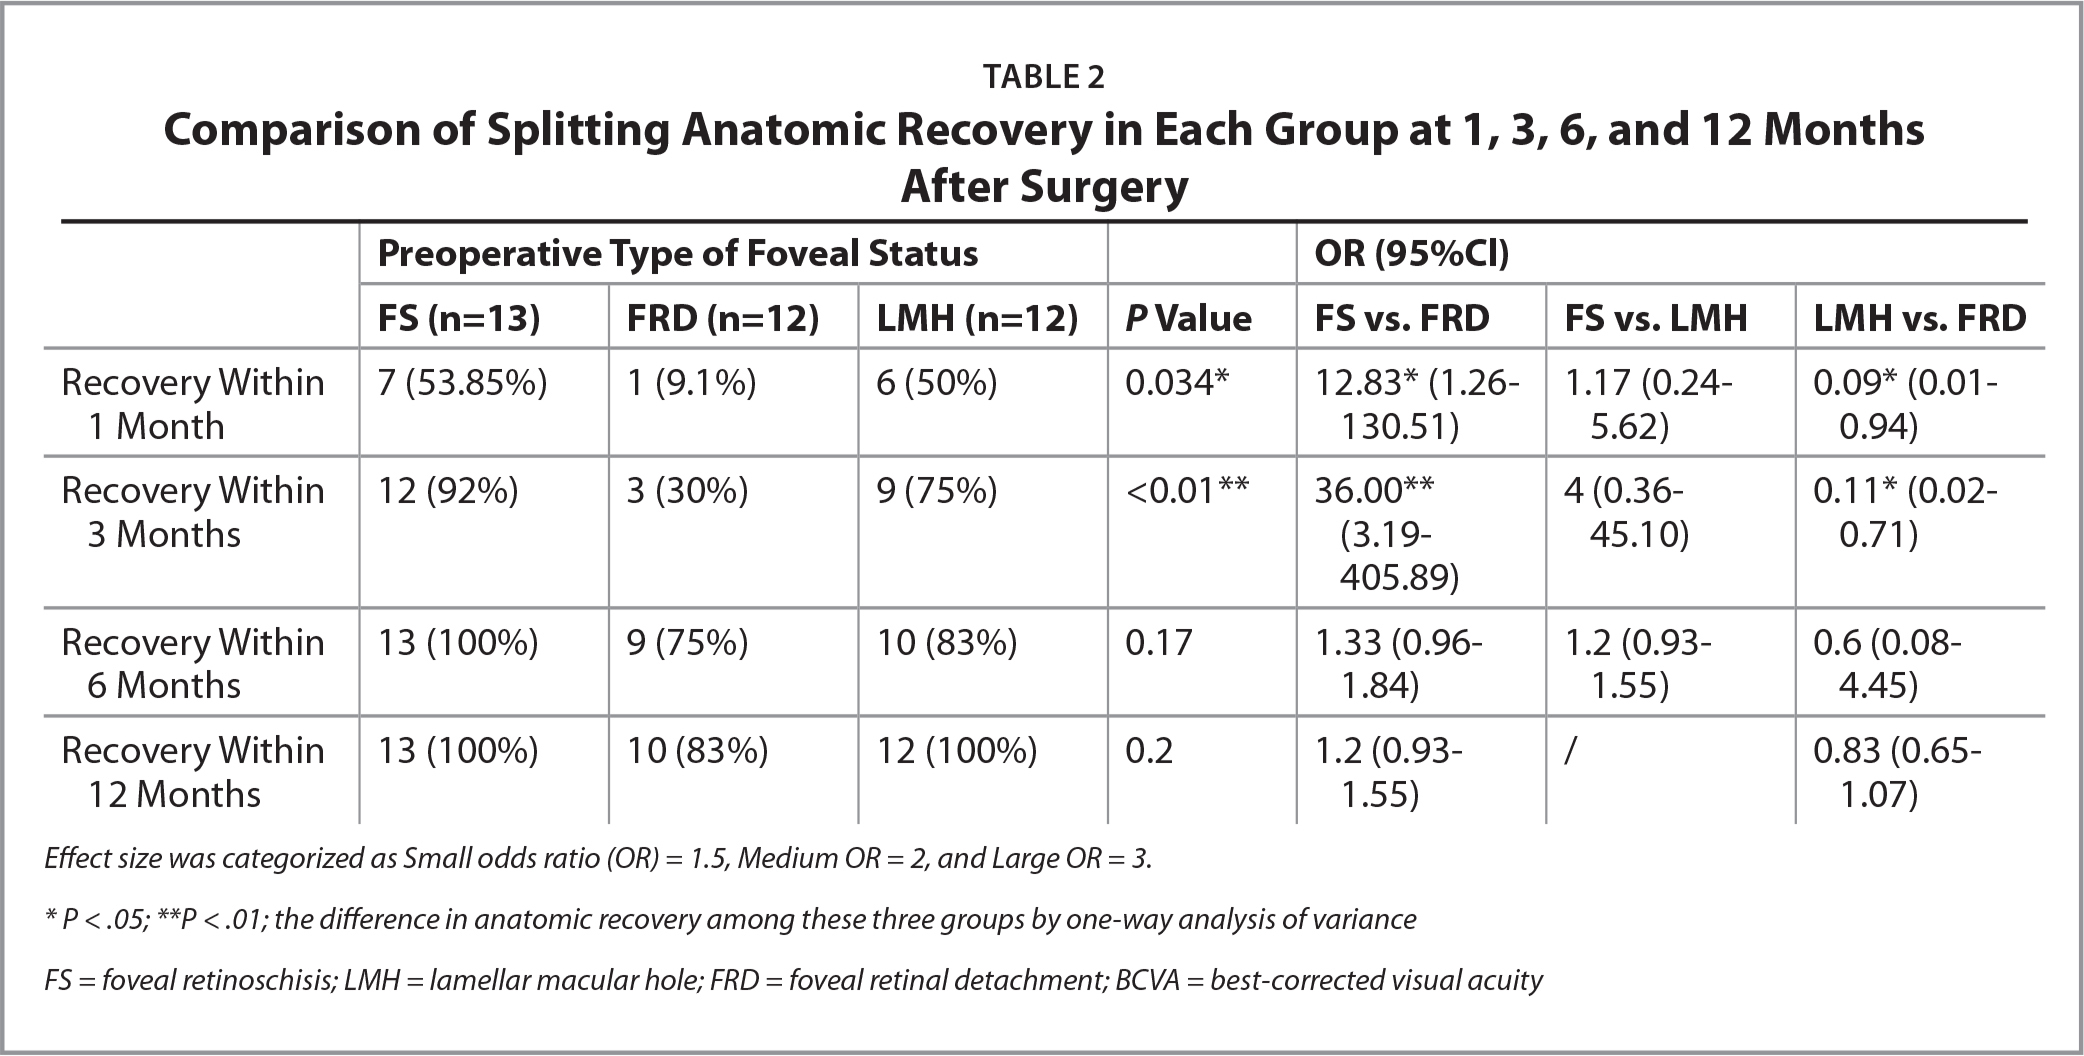 Comparison of Splitting Anatomic Recovery in Each Group at 1, 3, 6, and 12 Months After Surgery